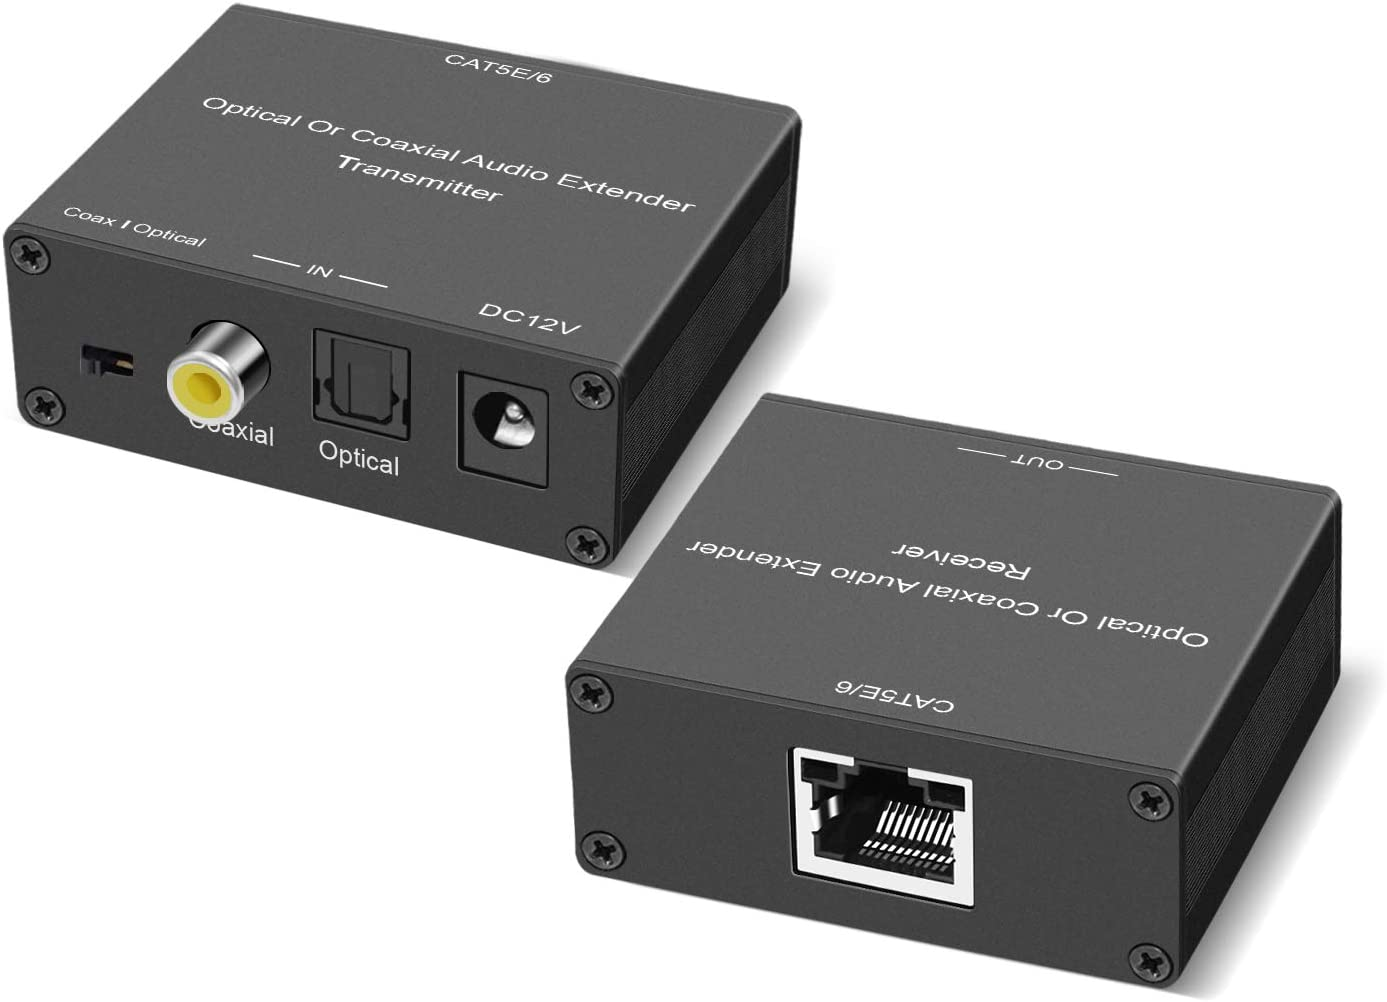 Free shipping anywhere in the Spring new work nation Digital Audio Extender Ext Optical Coaxial